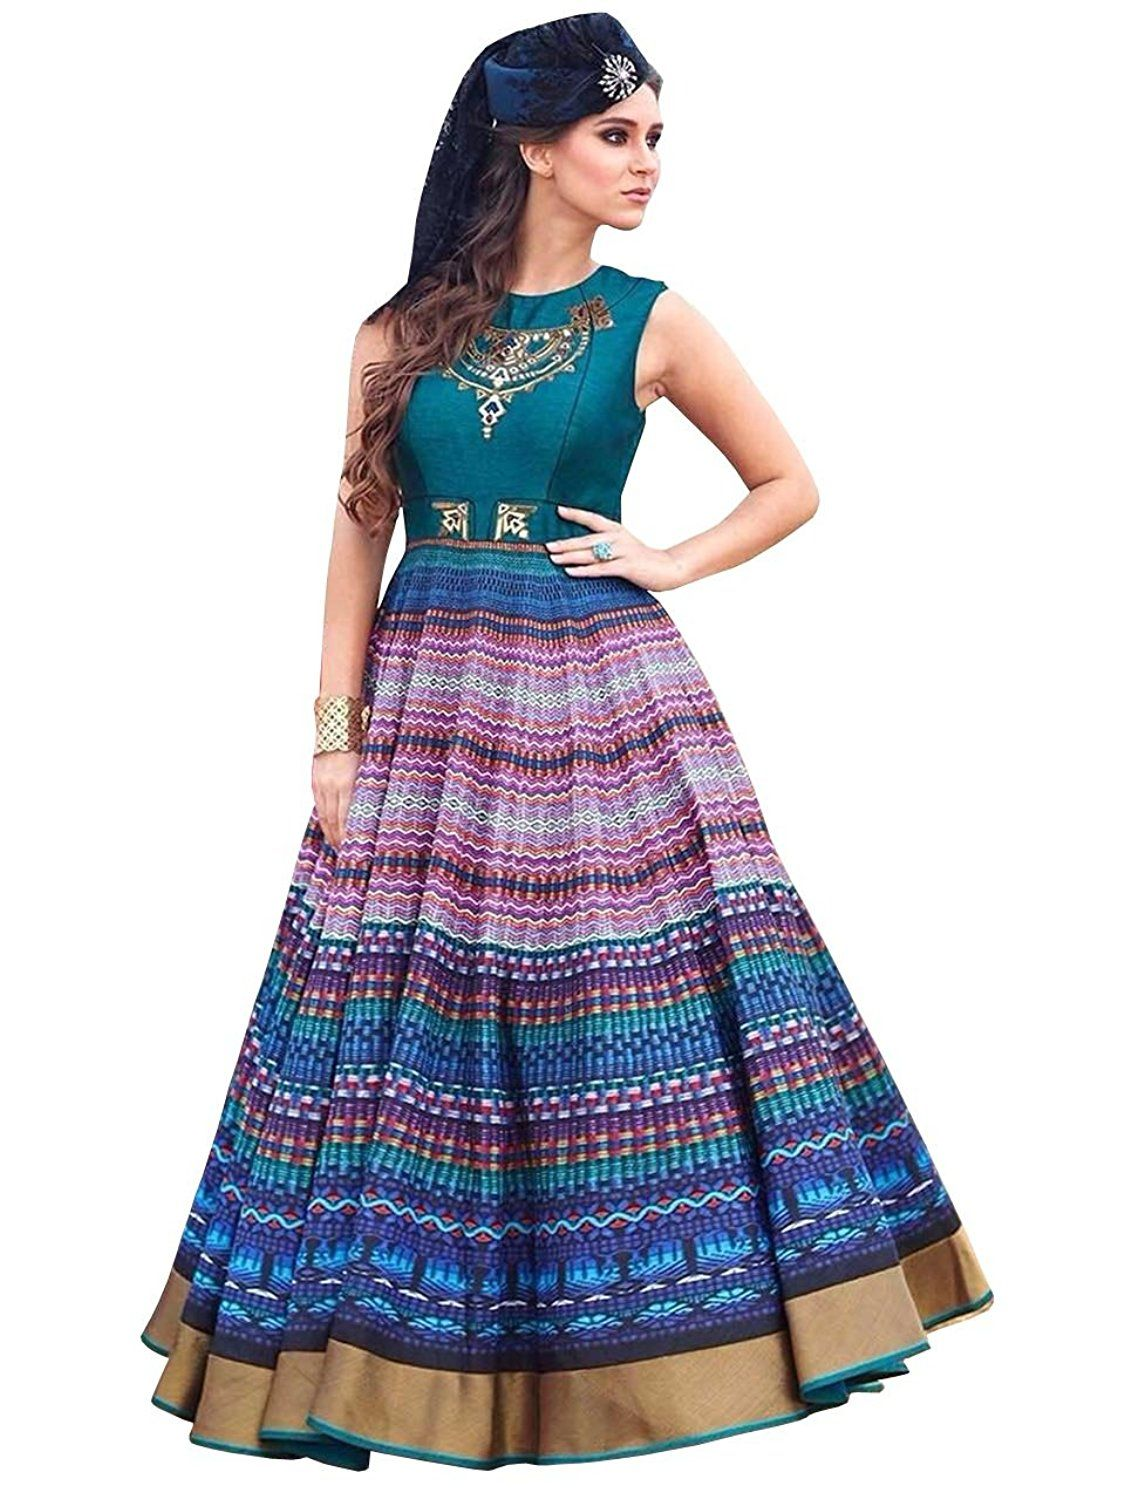 89e10c632ab9 Kapadewala New Latest Multicolor Printed Embroidered Banglore Silk Semi  Stitched Free Size XXL Party Wear Gown for Women